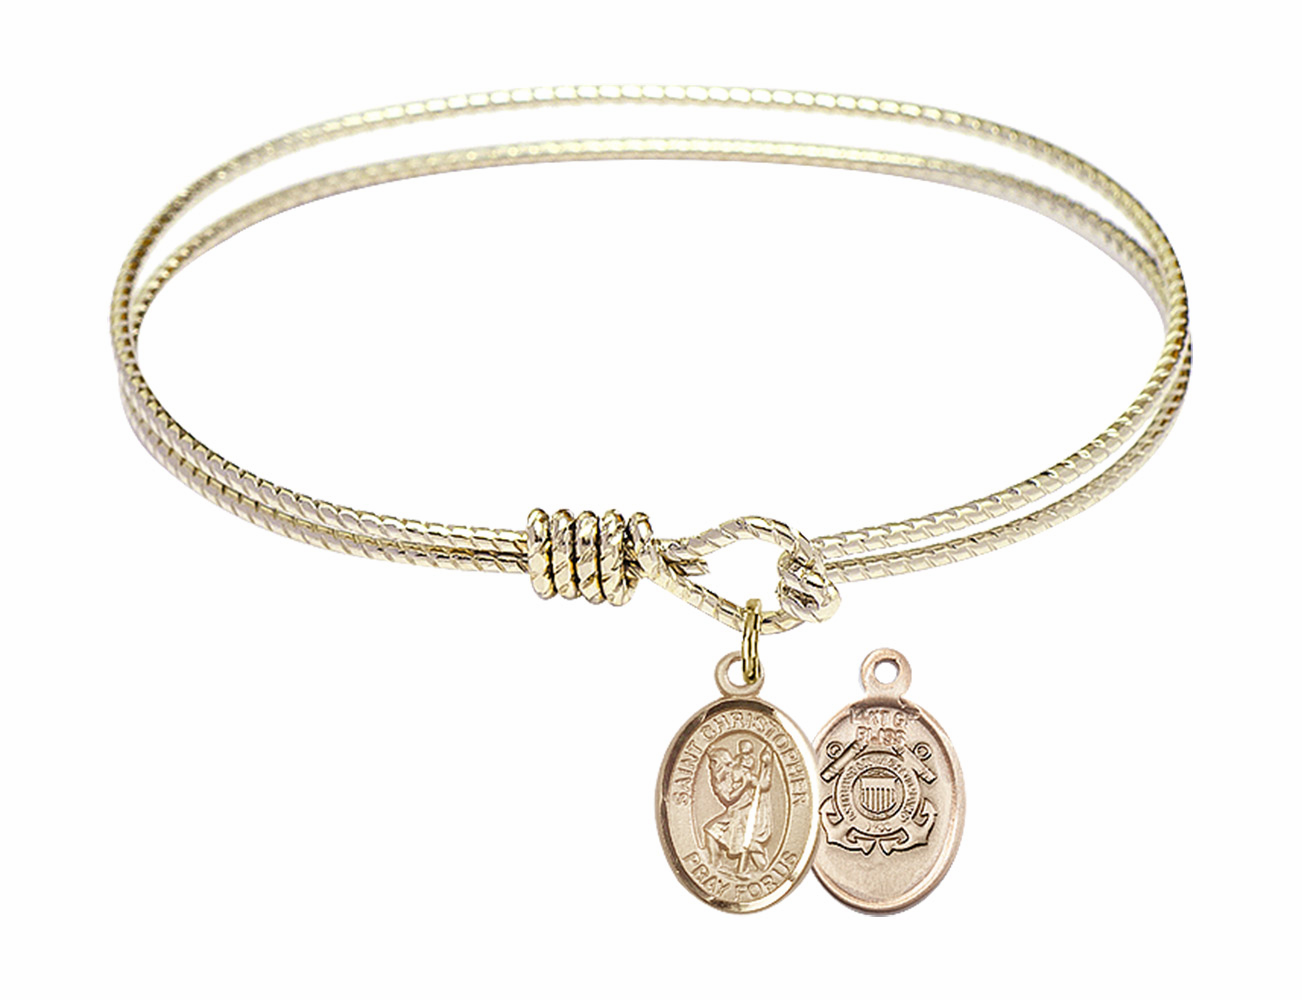 Twisted Gold-filled St Christopher Coast Guard Bangle Charm Bracelet by Bliss